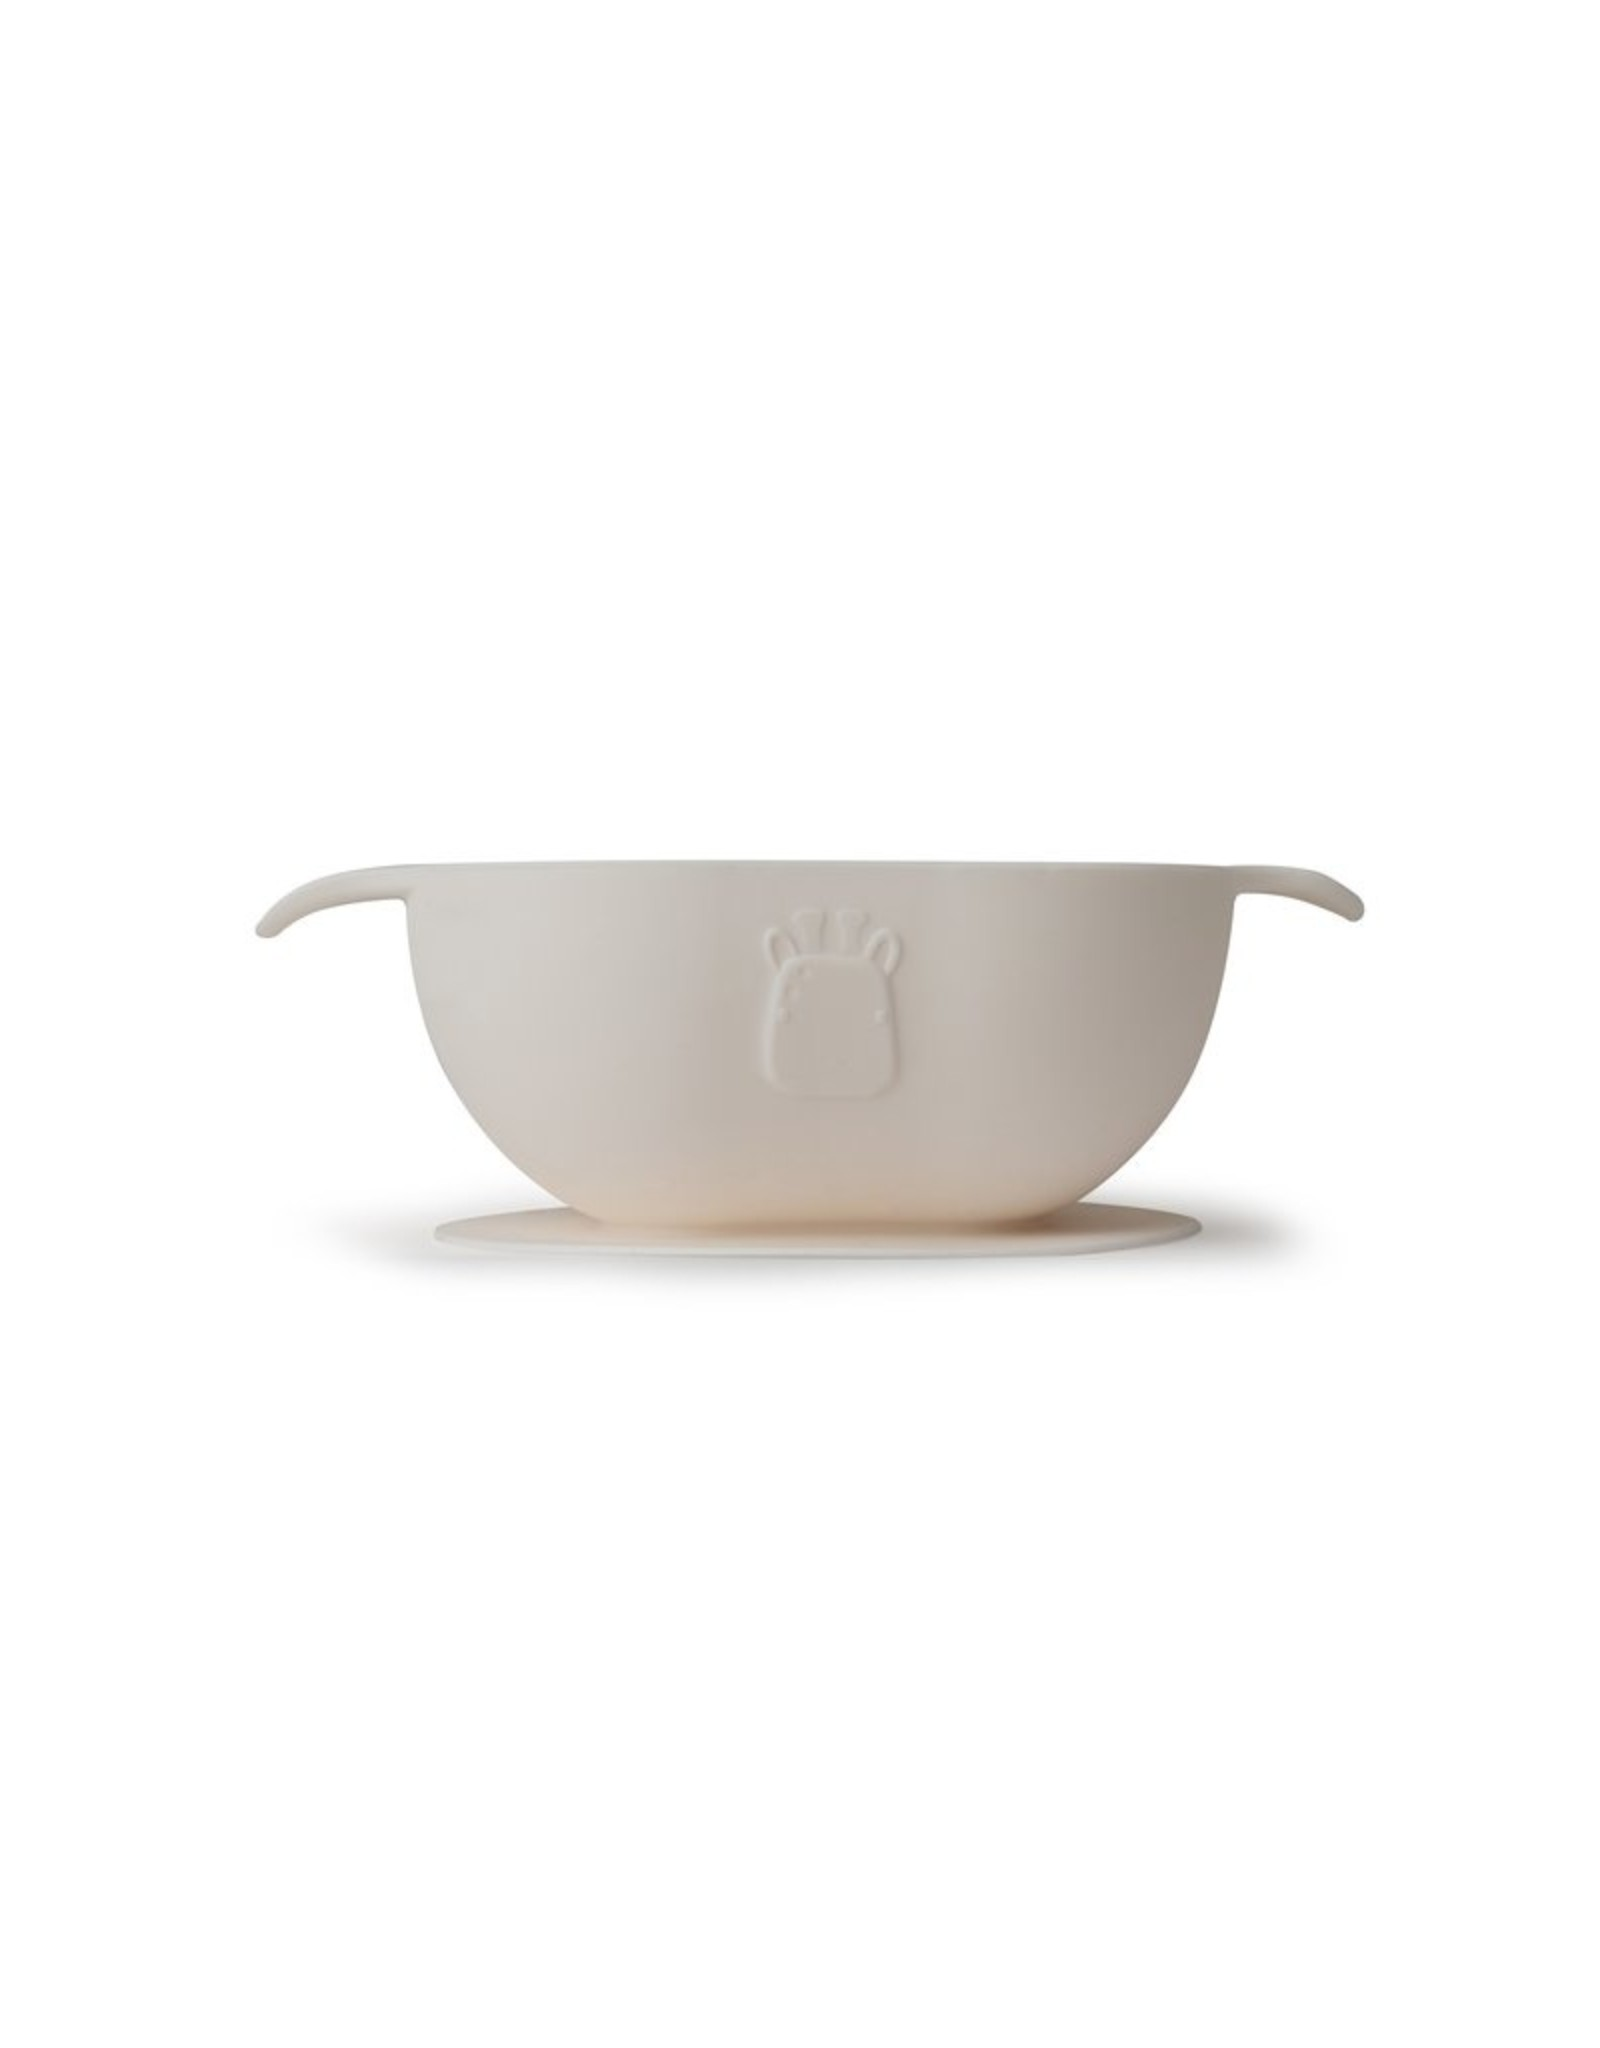 Loulou Lolipop Born To Be Wild, Snack Bowl, Cream